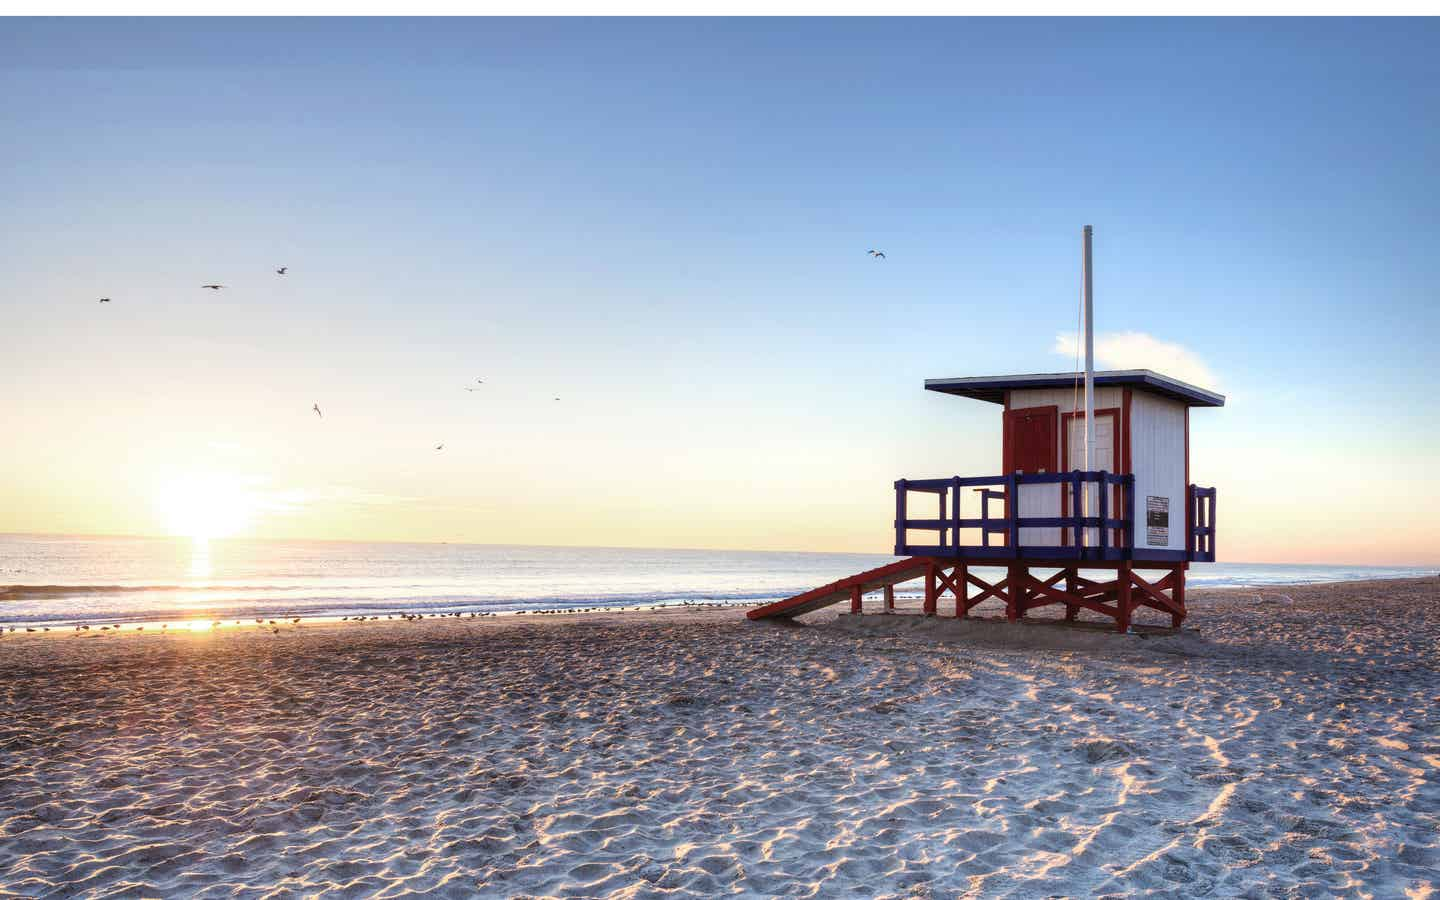 Cape Canaveral Beach with Lifeguard hut at sunset.